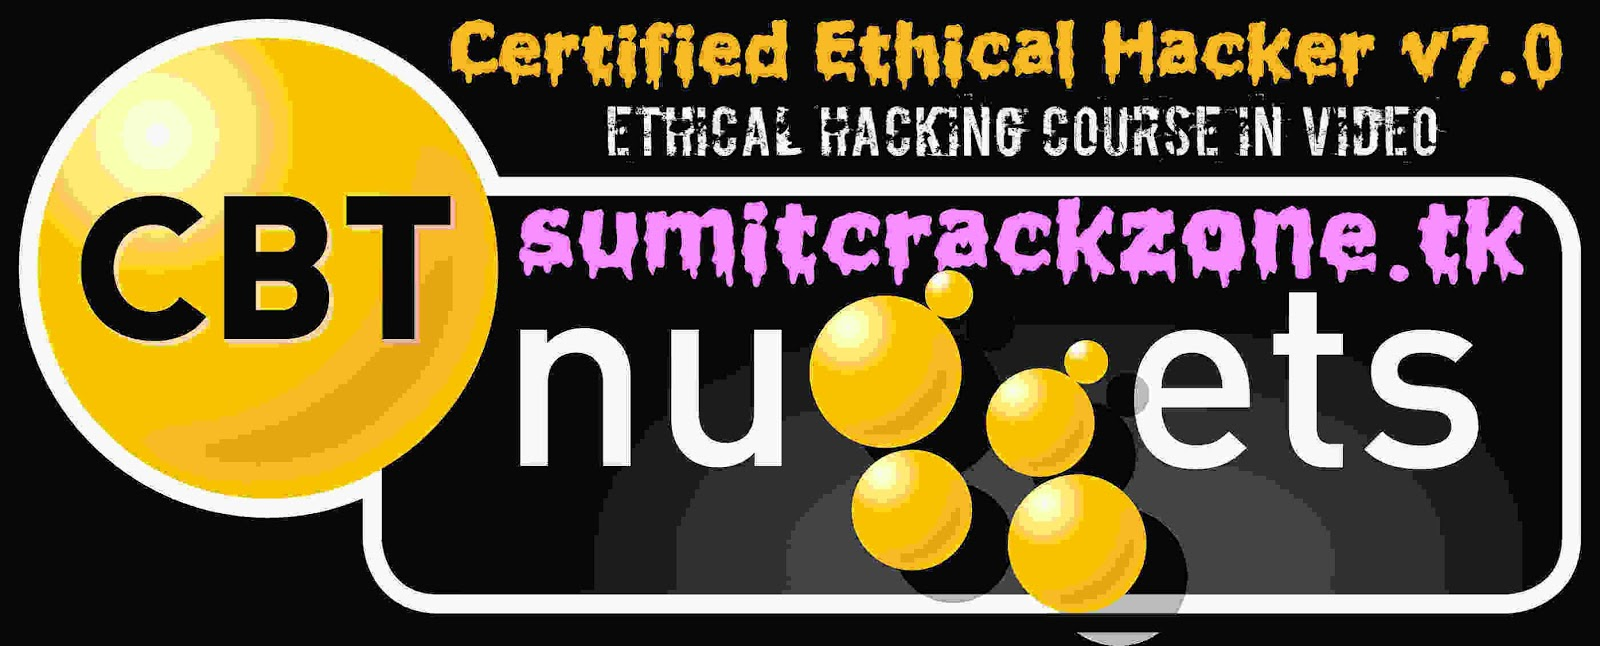 CBT NUGGETS EC Council Certified Ethical Hacker v7 0 !! James Conrad